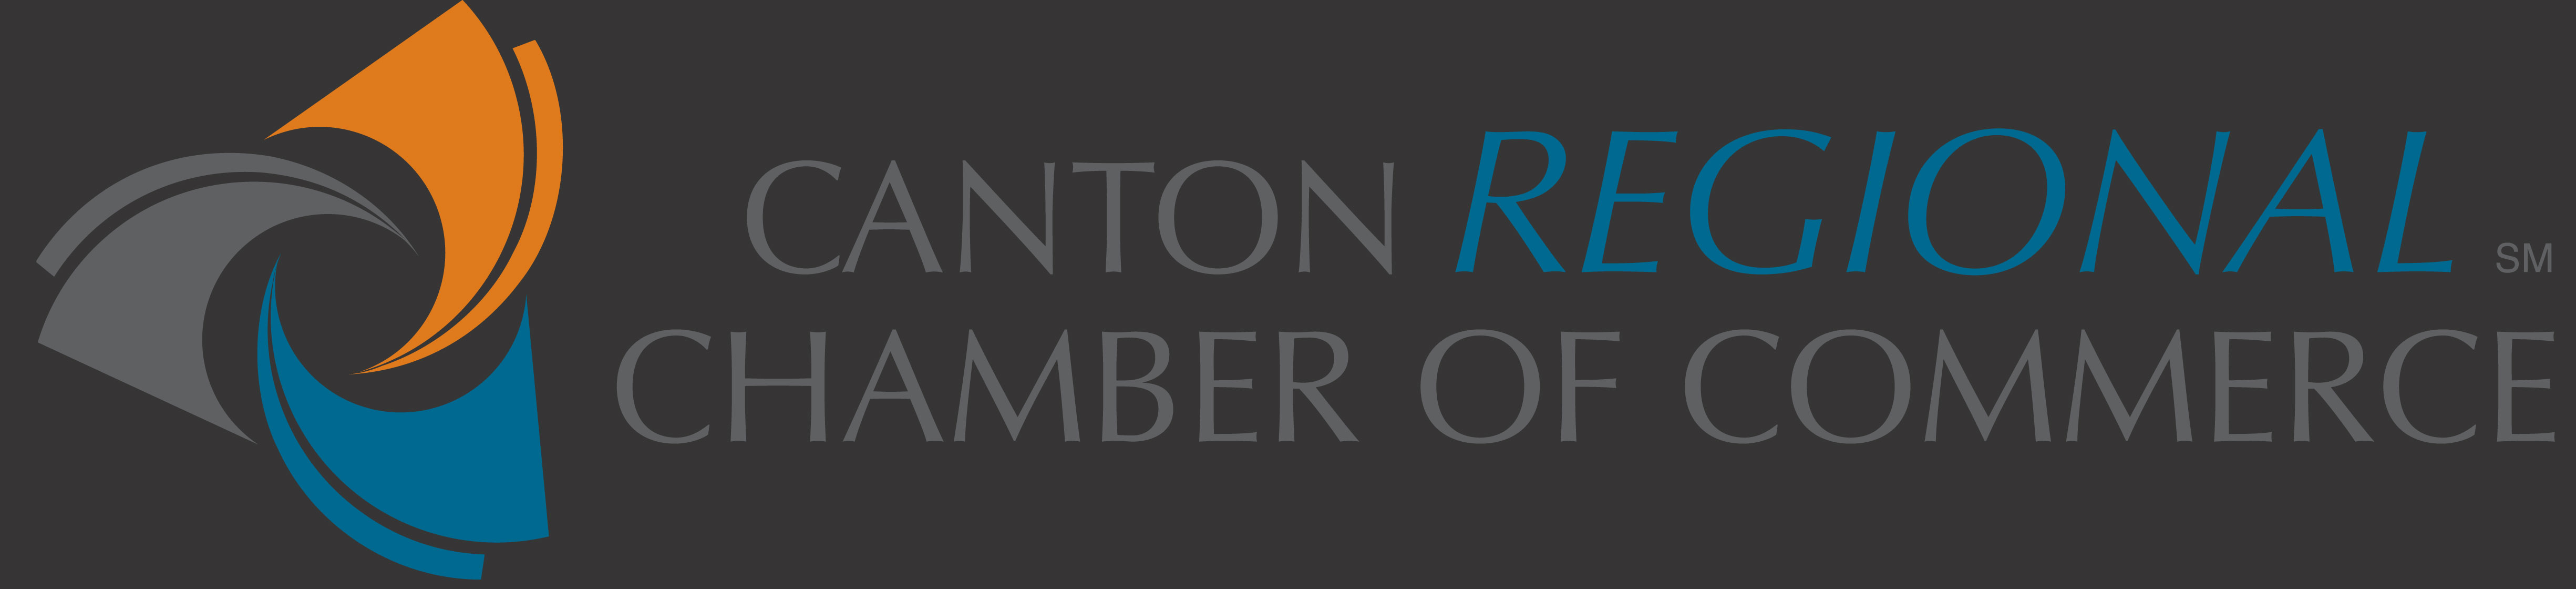 Canton Regional Chamber of Commerce